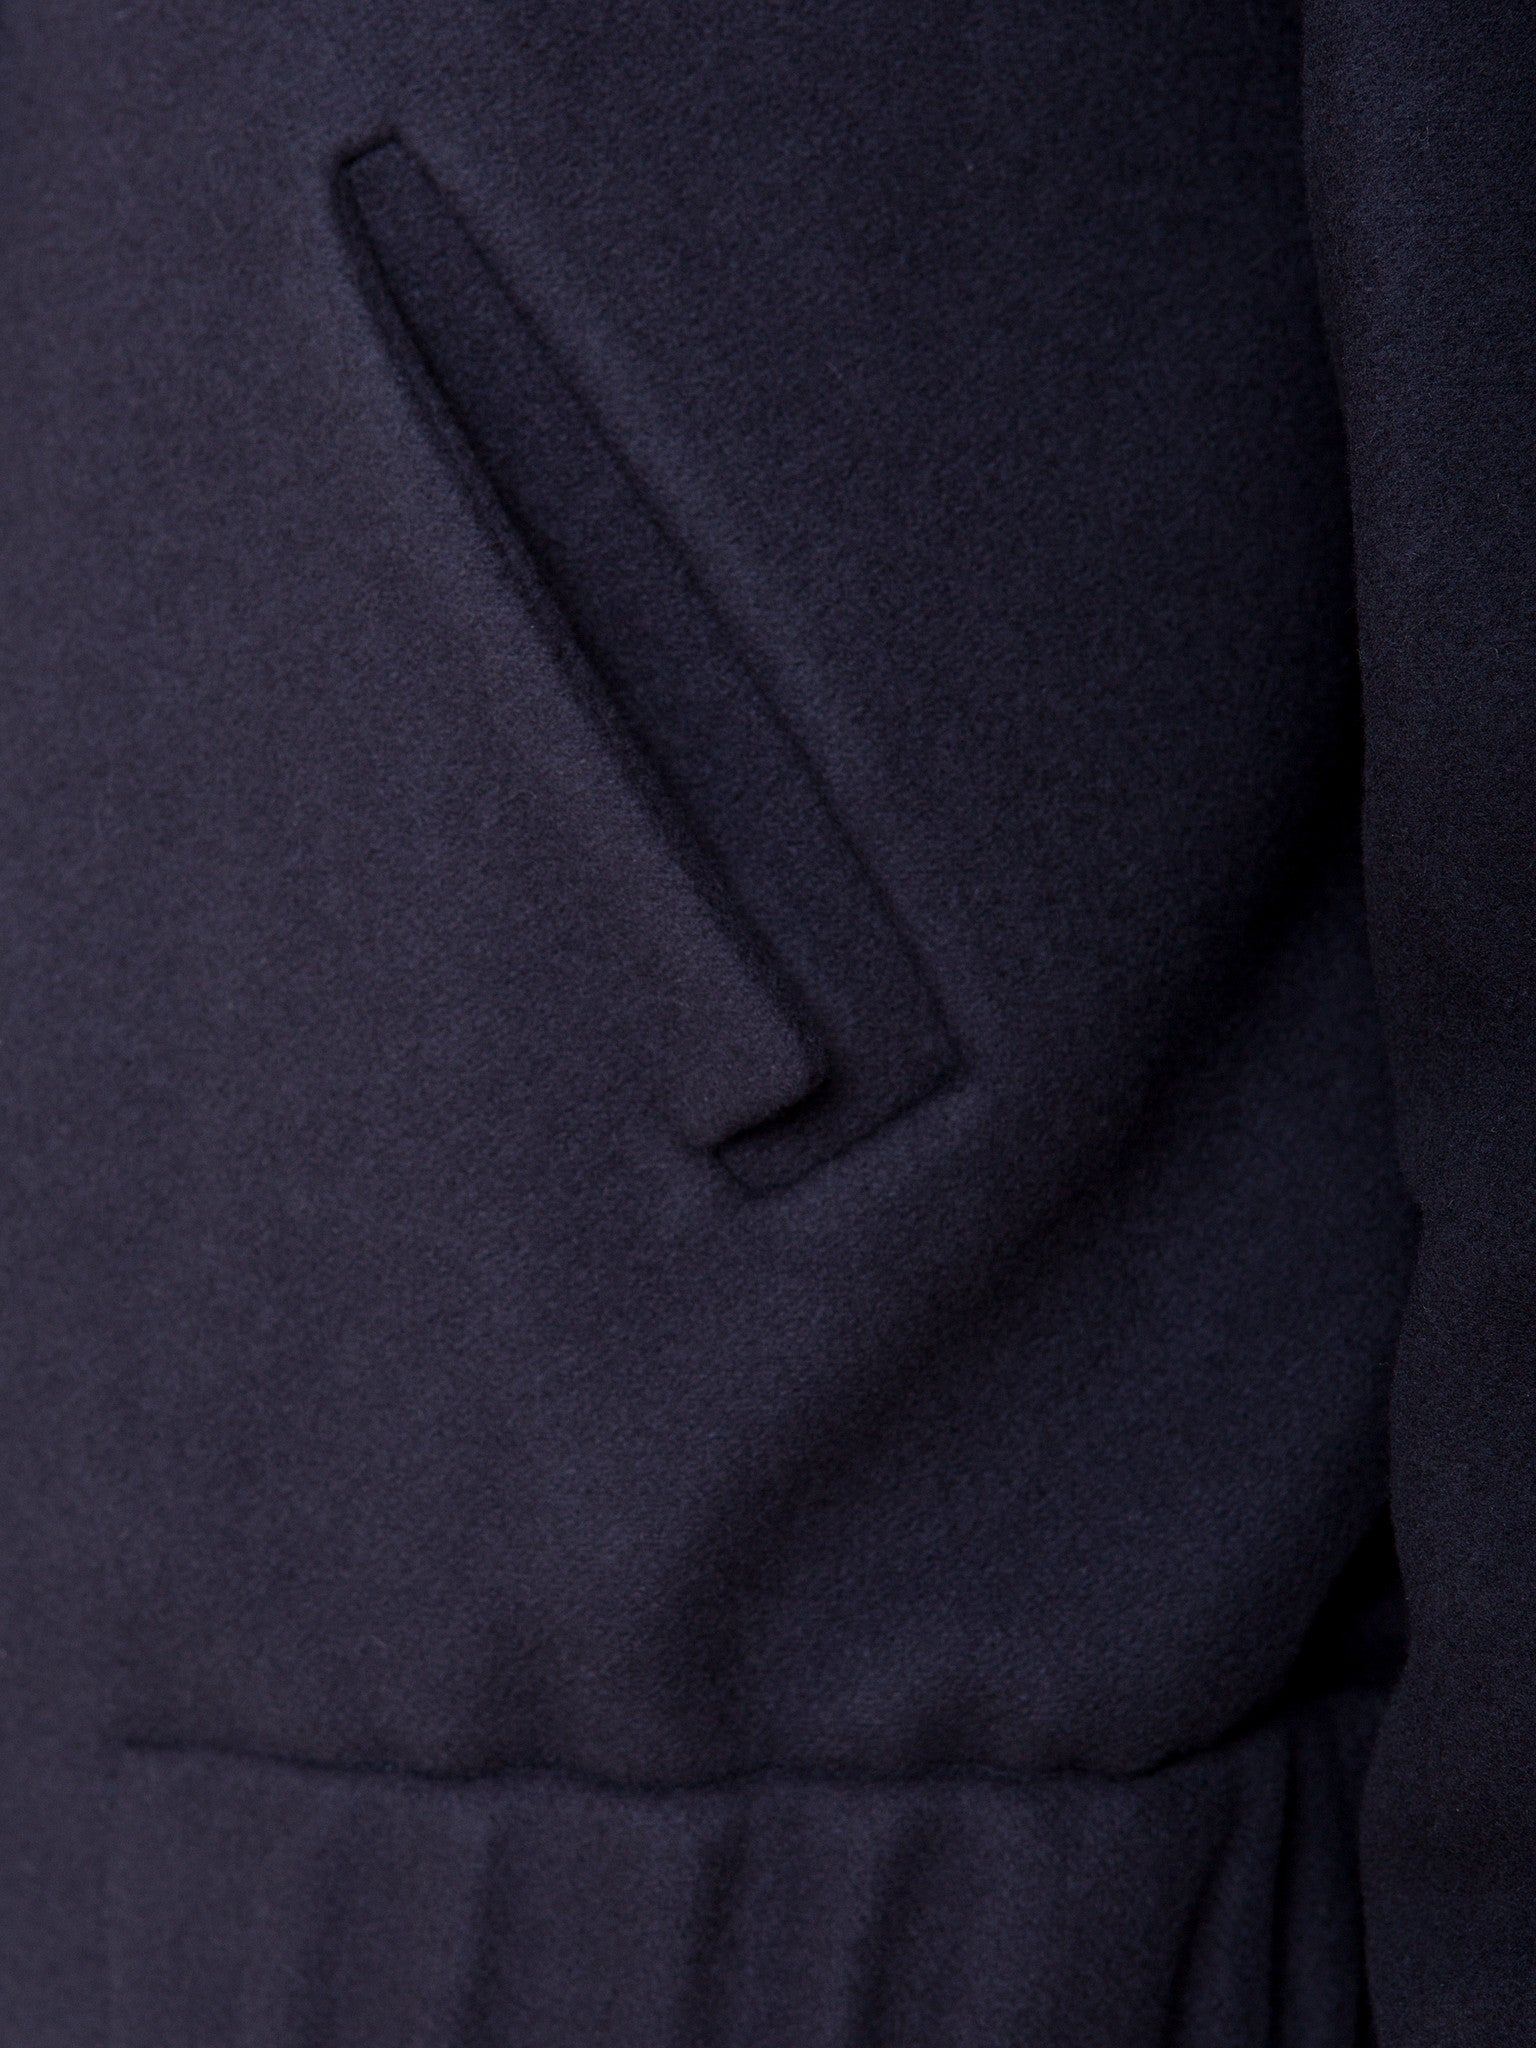 Ambali Dark Navy Bomber Jacket Pocket Detail